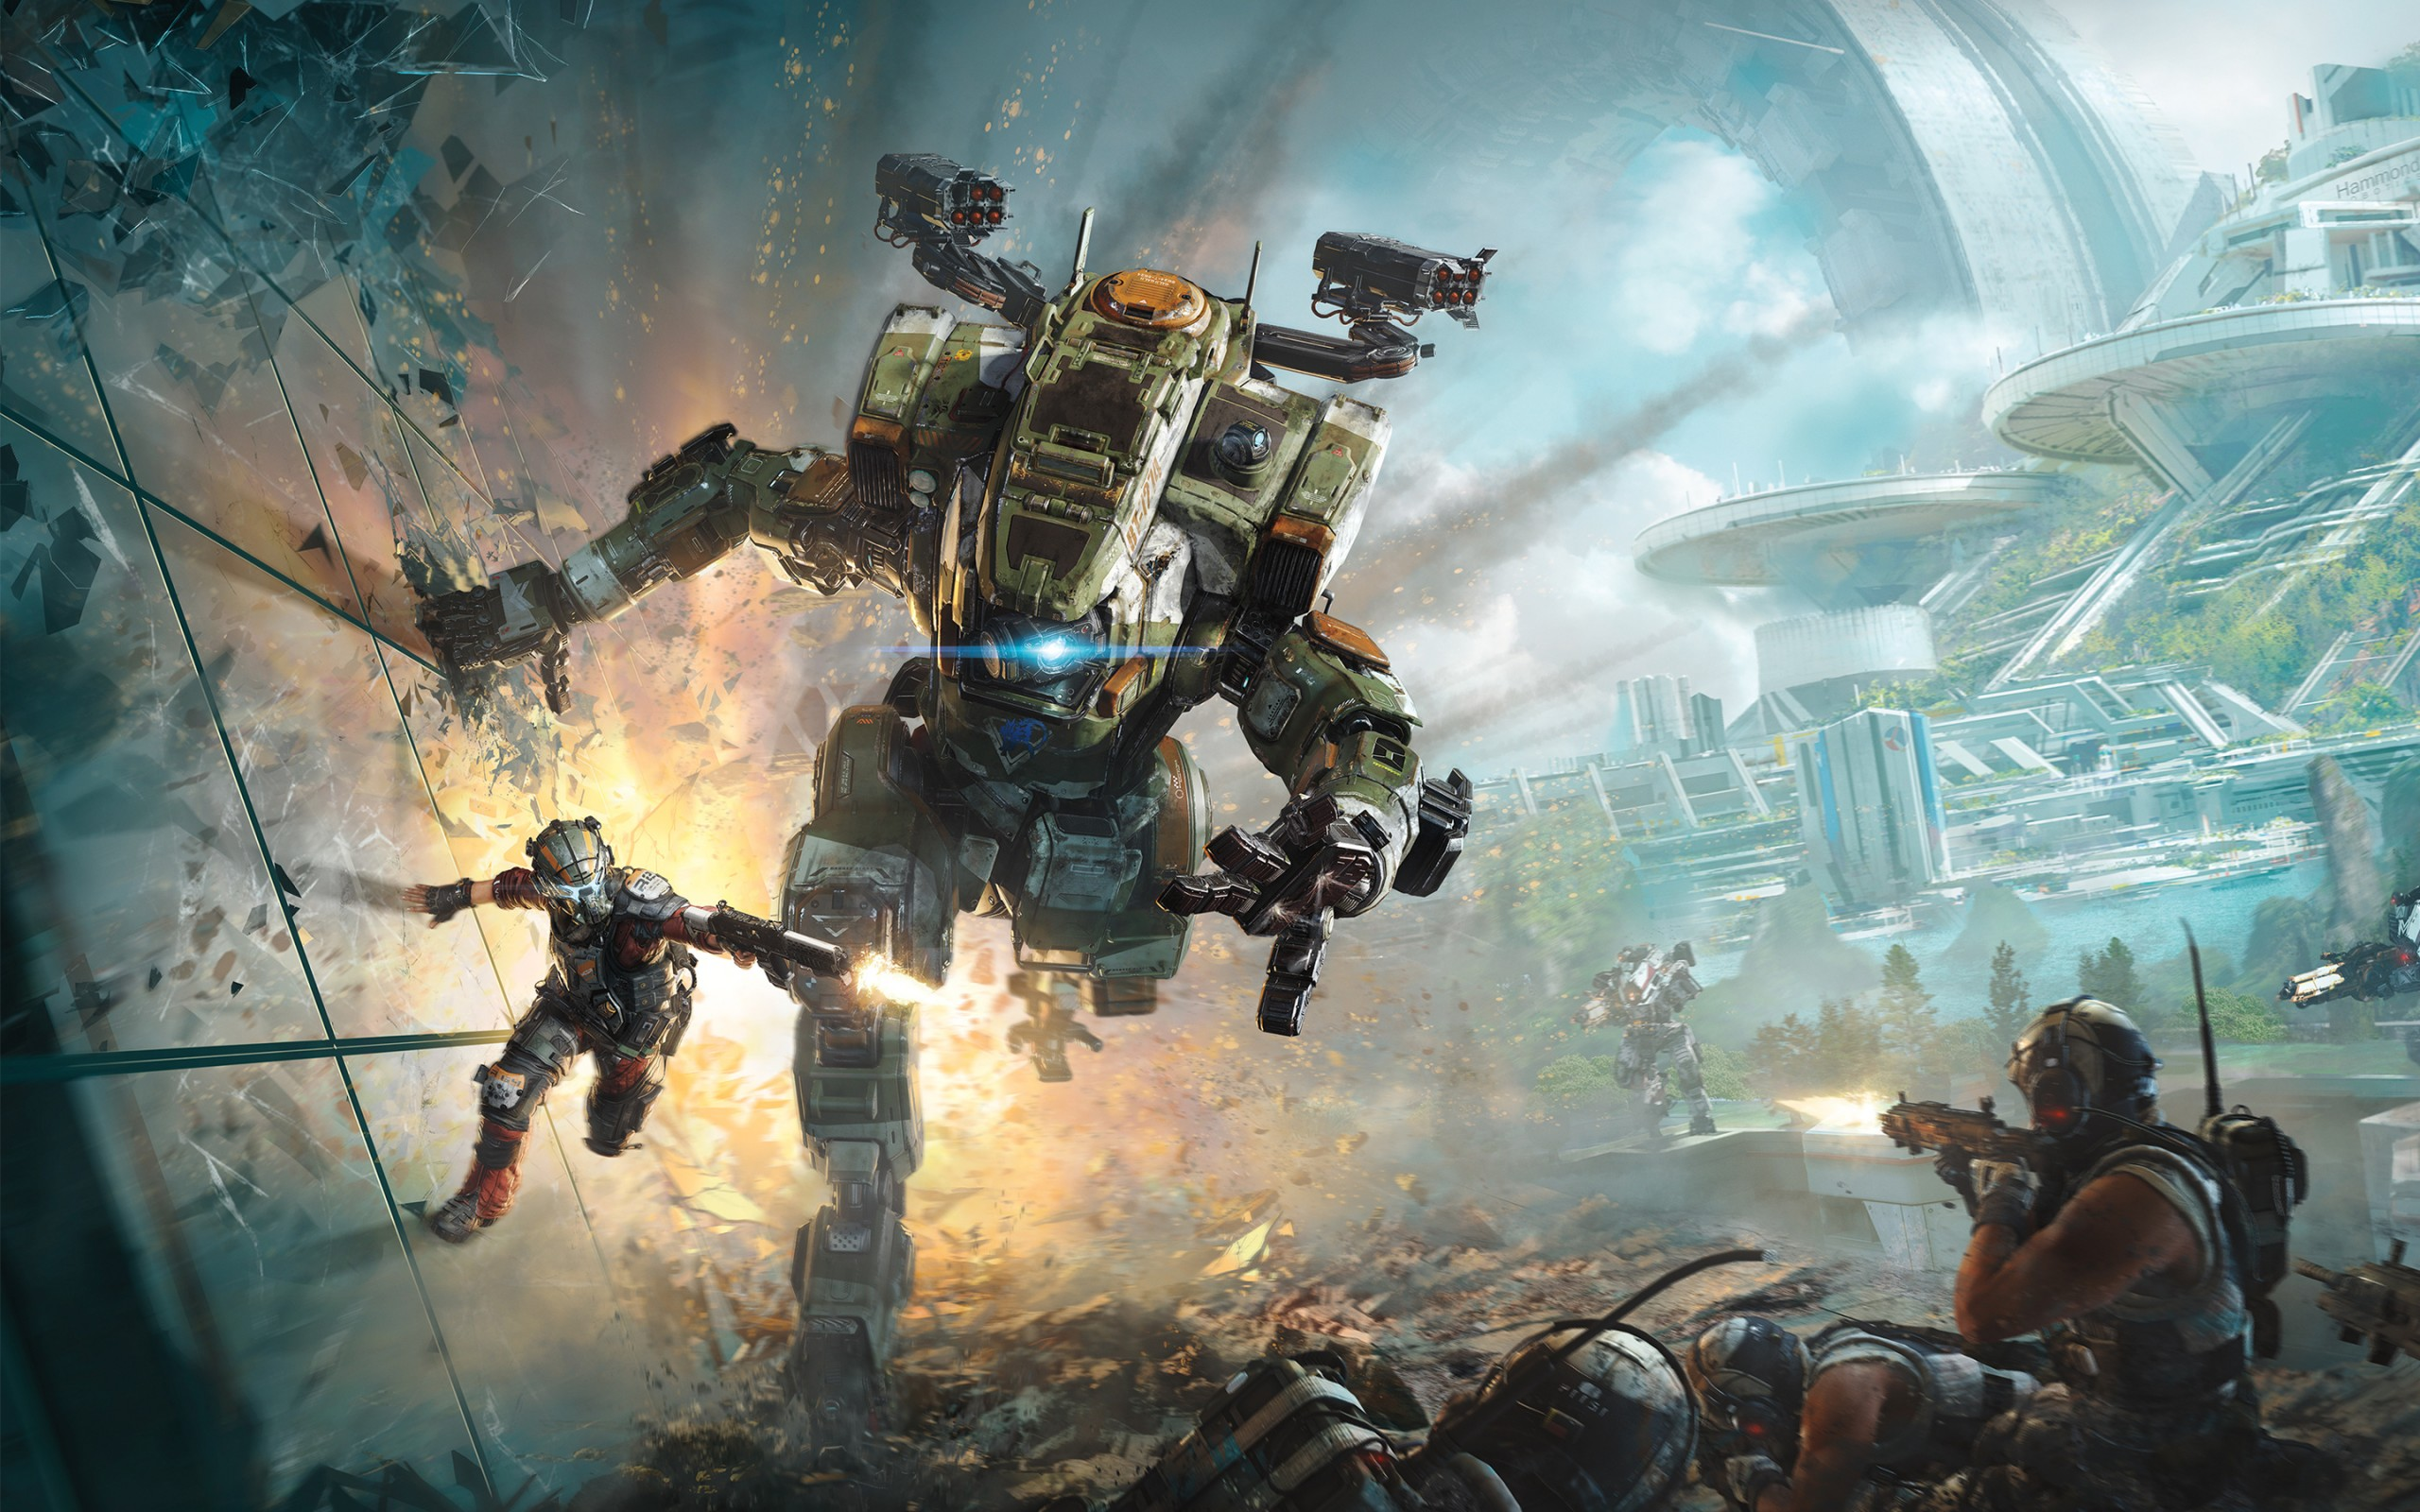 Fall Wallpaper For Iphone 5 Titanfall 2 2016 Game 4k Wallpapers Hd Wallpapers Id